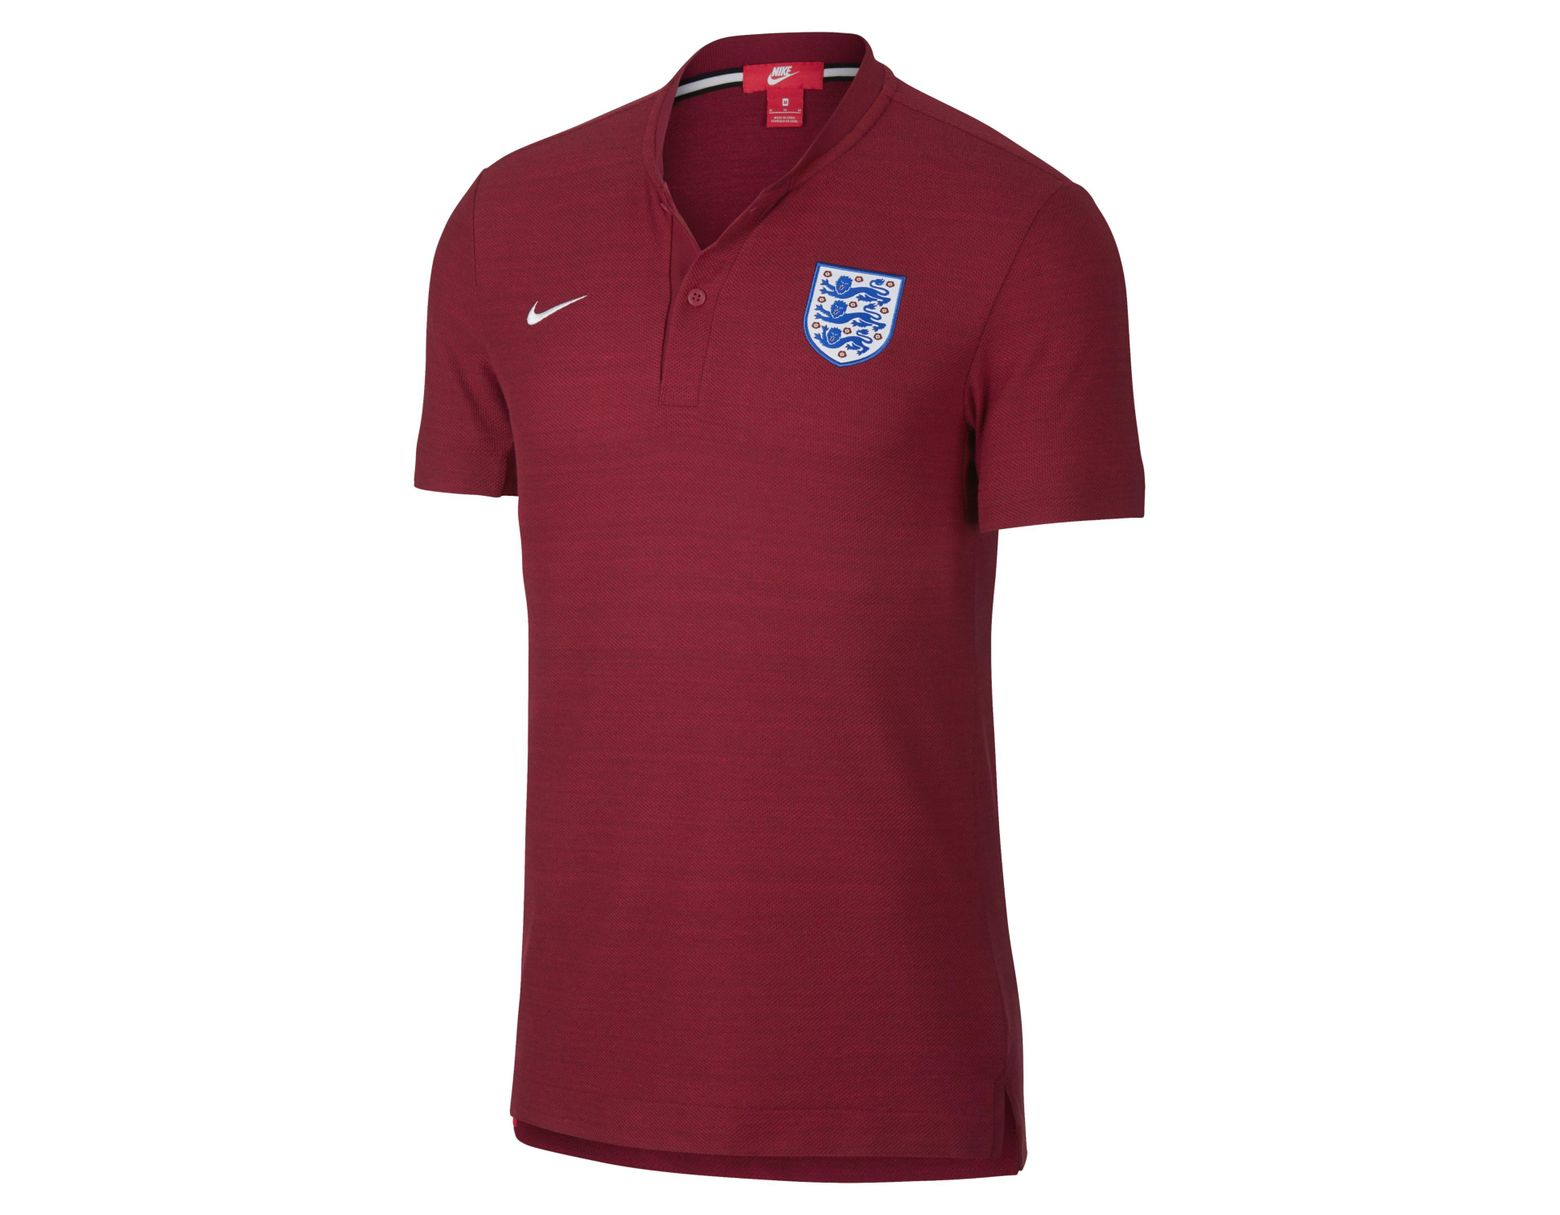 9dcaaa16c Nike England Authentic Grand Slam Polo in Red for Men - Save 14% - Lyst